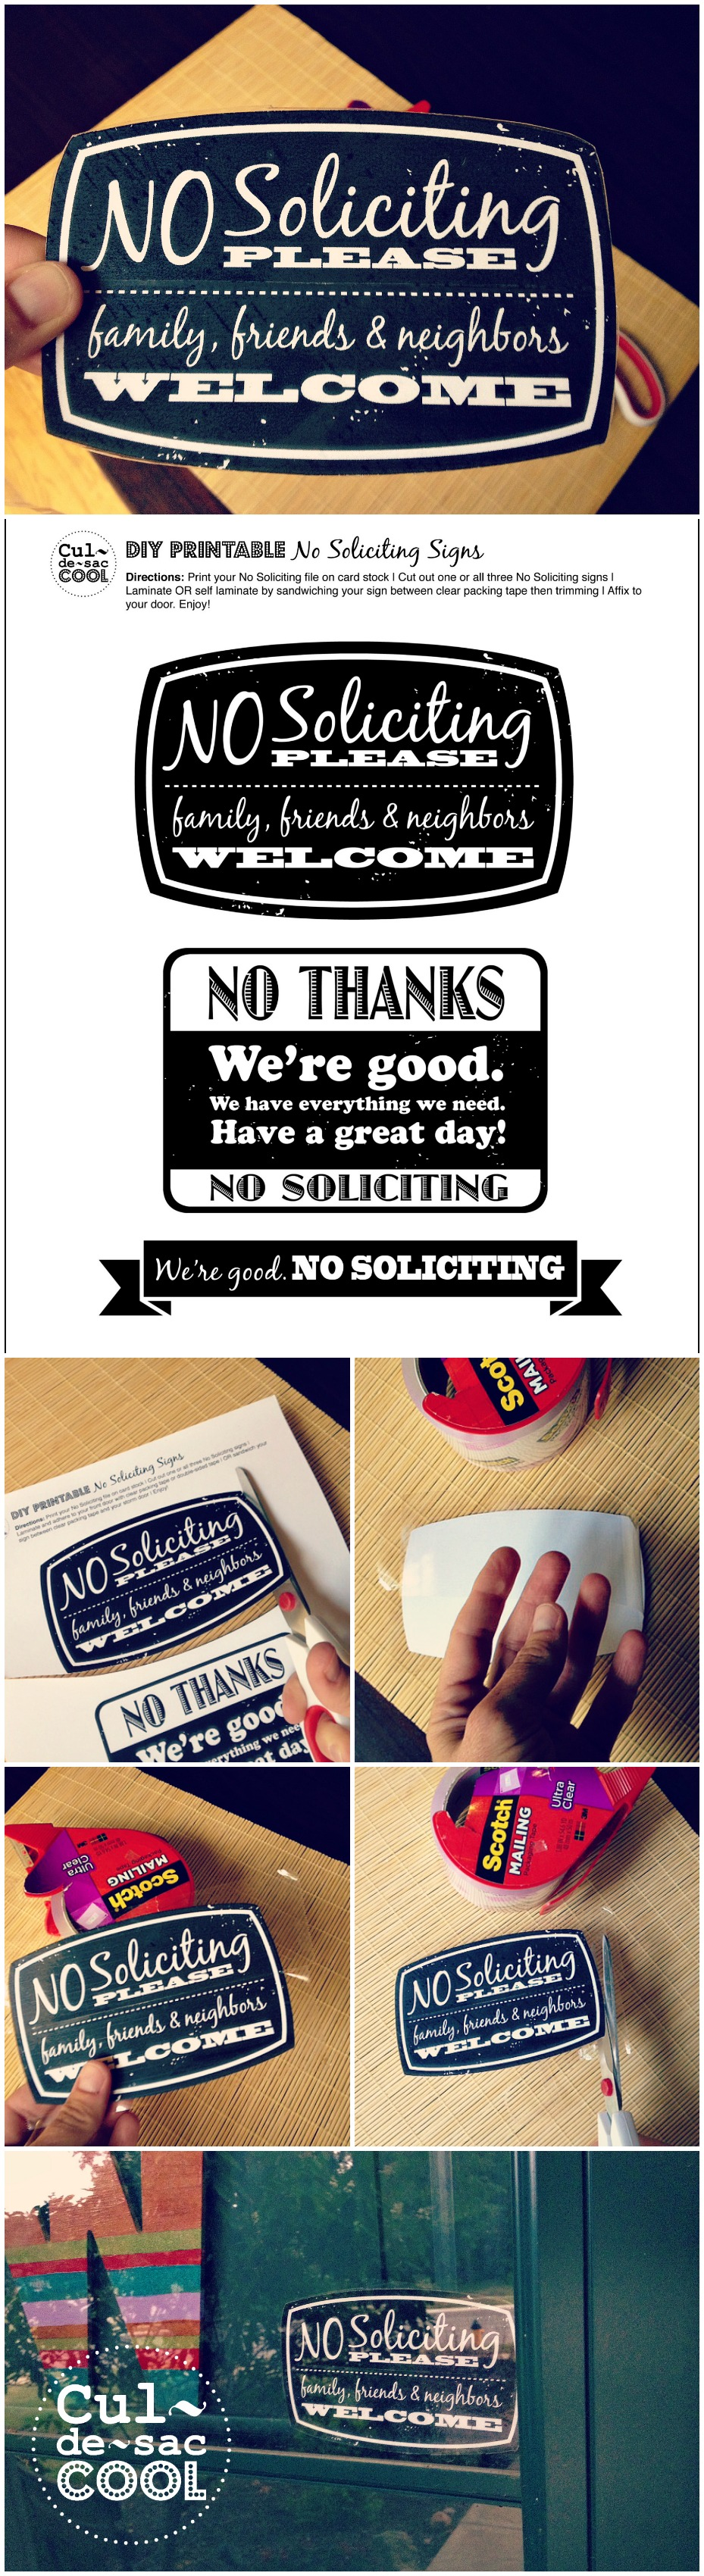 picture about Printable No Soliciting Sign referred to as Do-it-yourself Printable No Soliciting Signs or symptoms